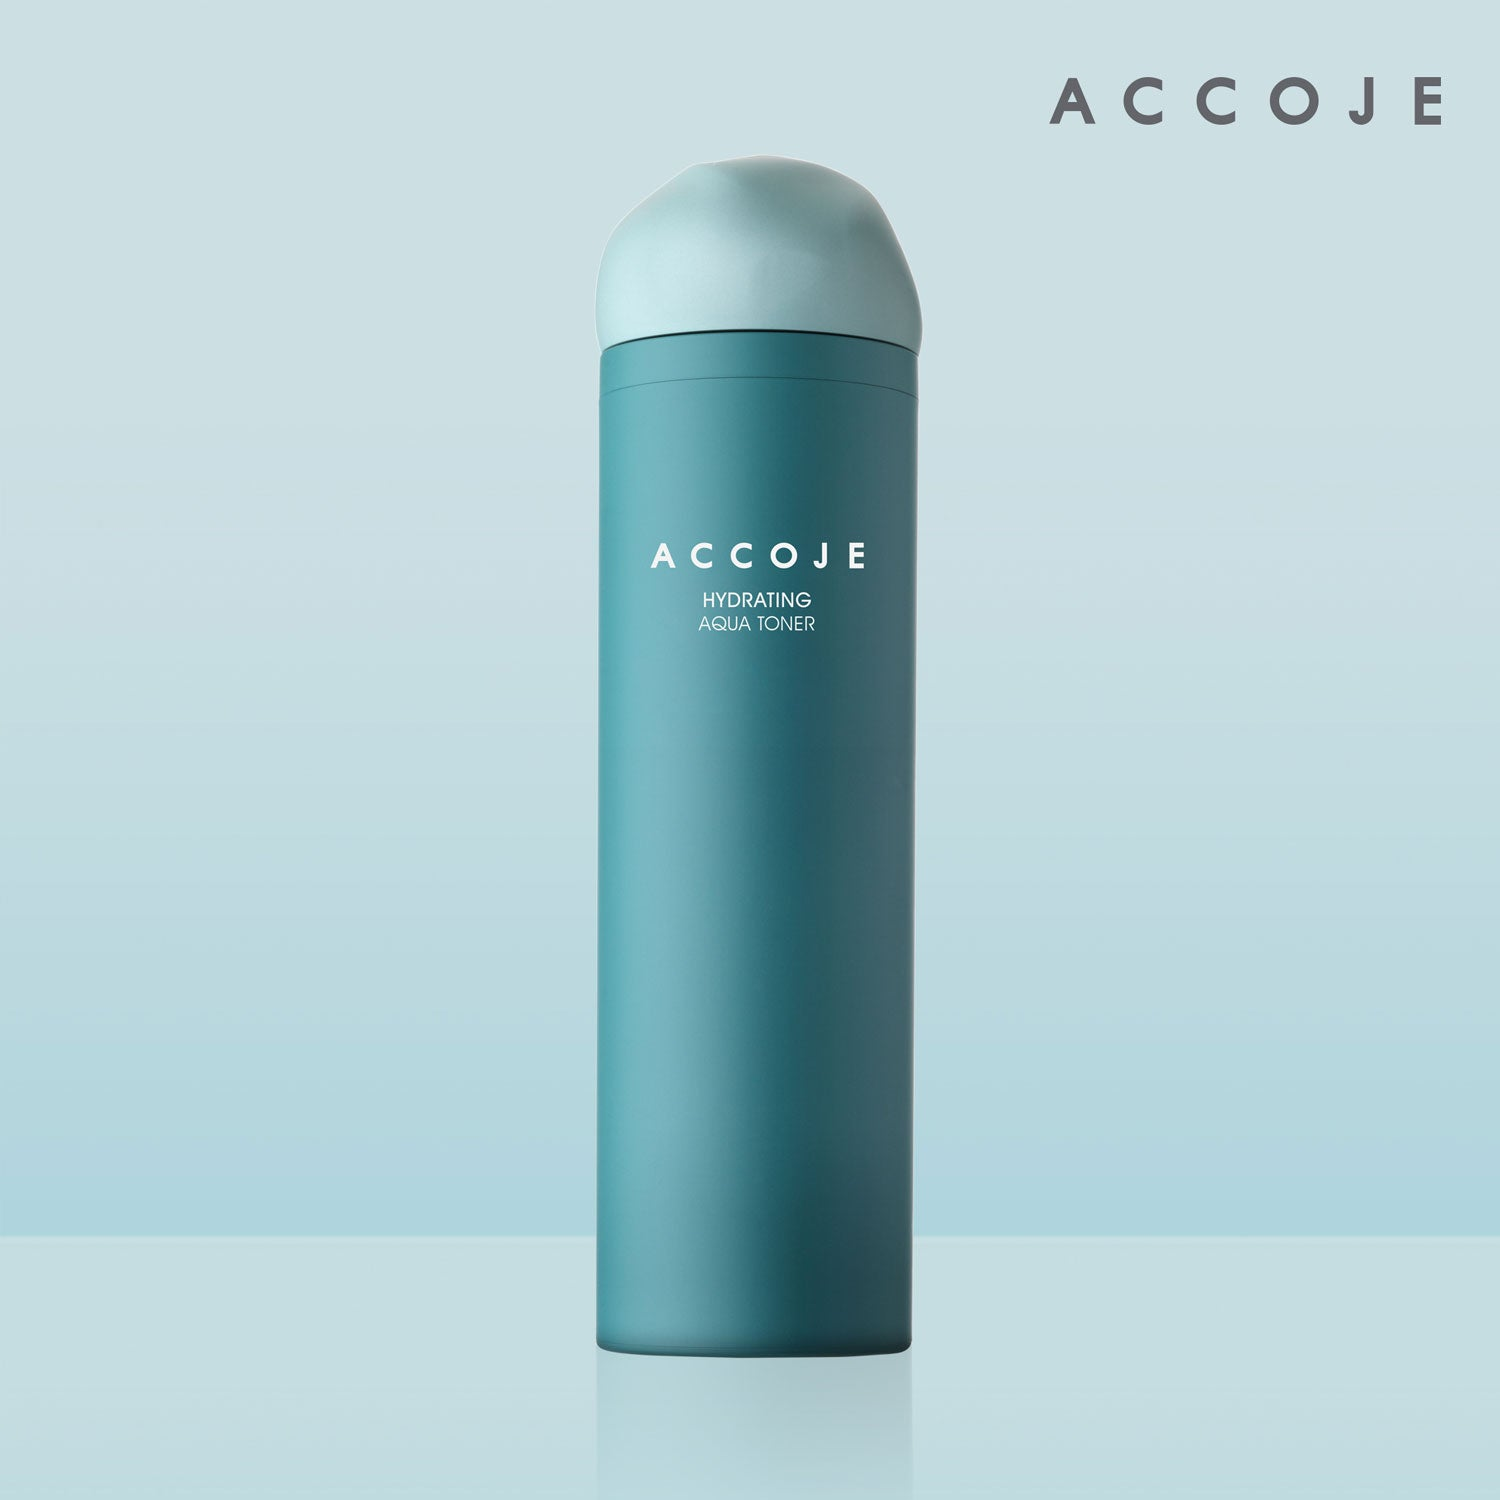 [ACCOJE] Hydrating Aqua Skin Toner, Purifying Toner for Face, Refreshes and Moisturizes Skin, Quick Absorbtion for Perfect pH Balance - (130 ml/4.4 fl oz)